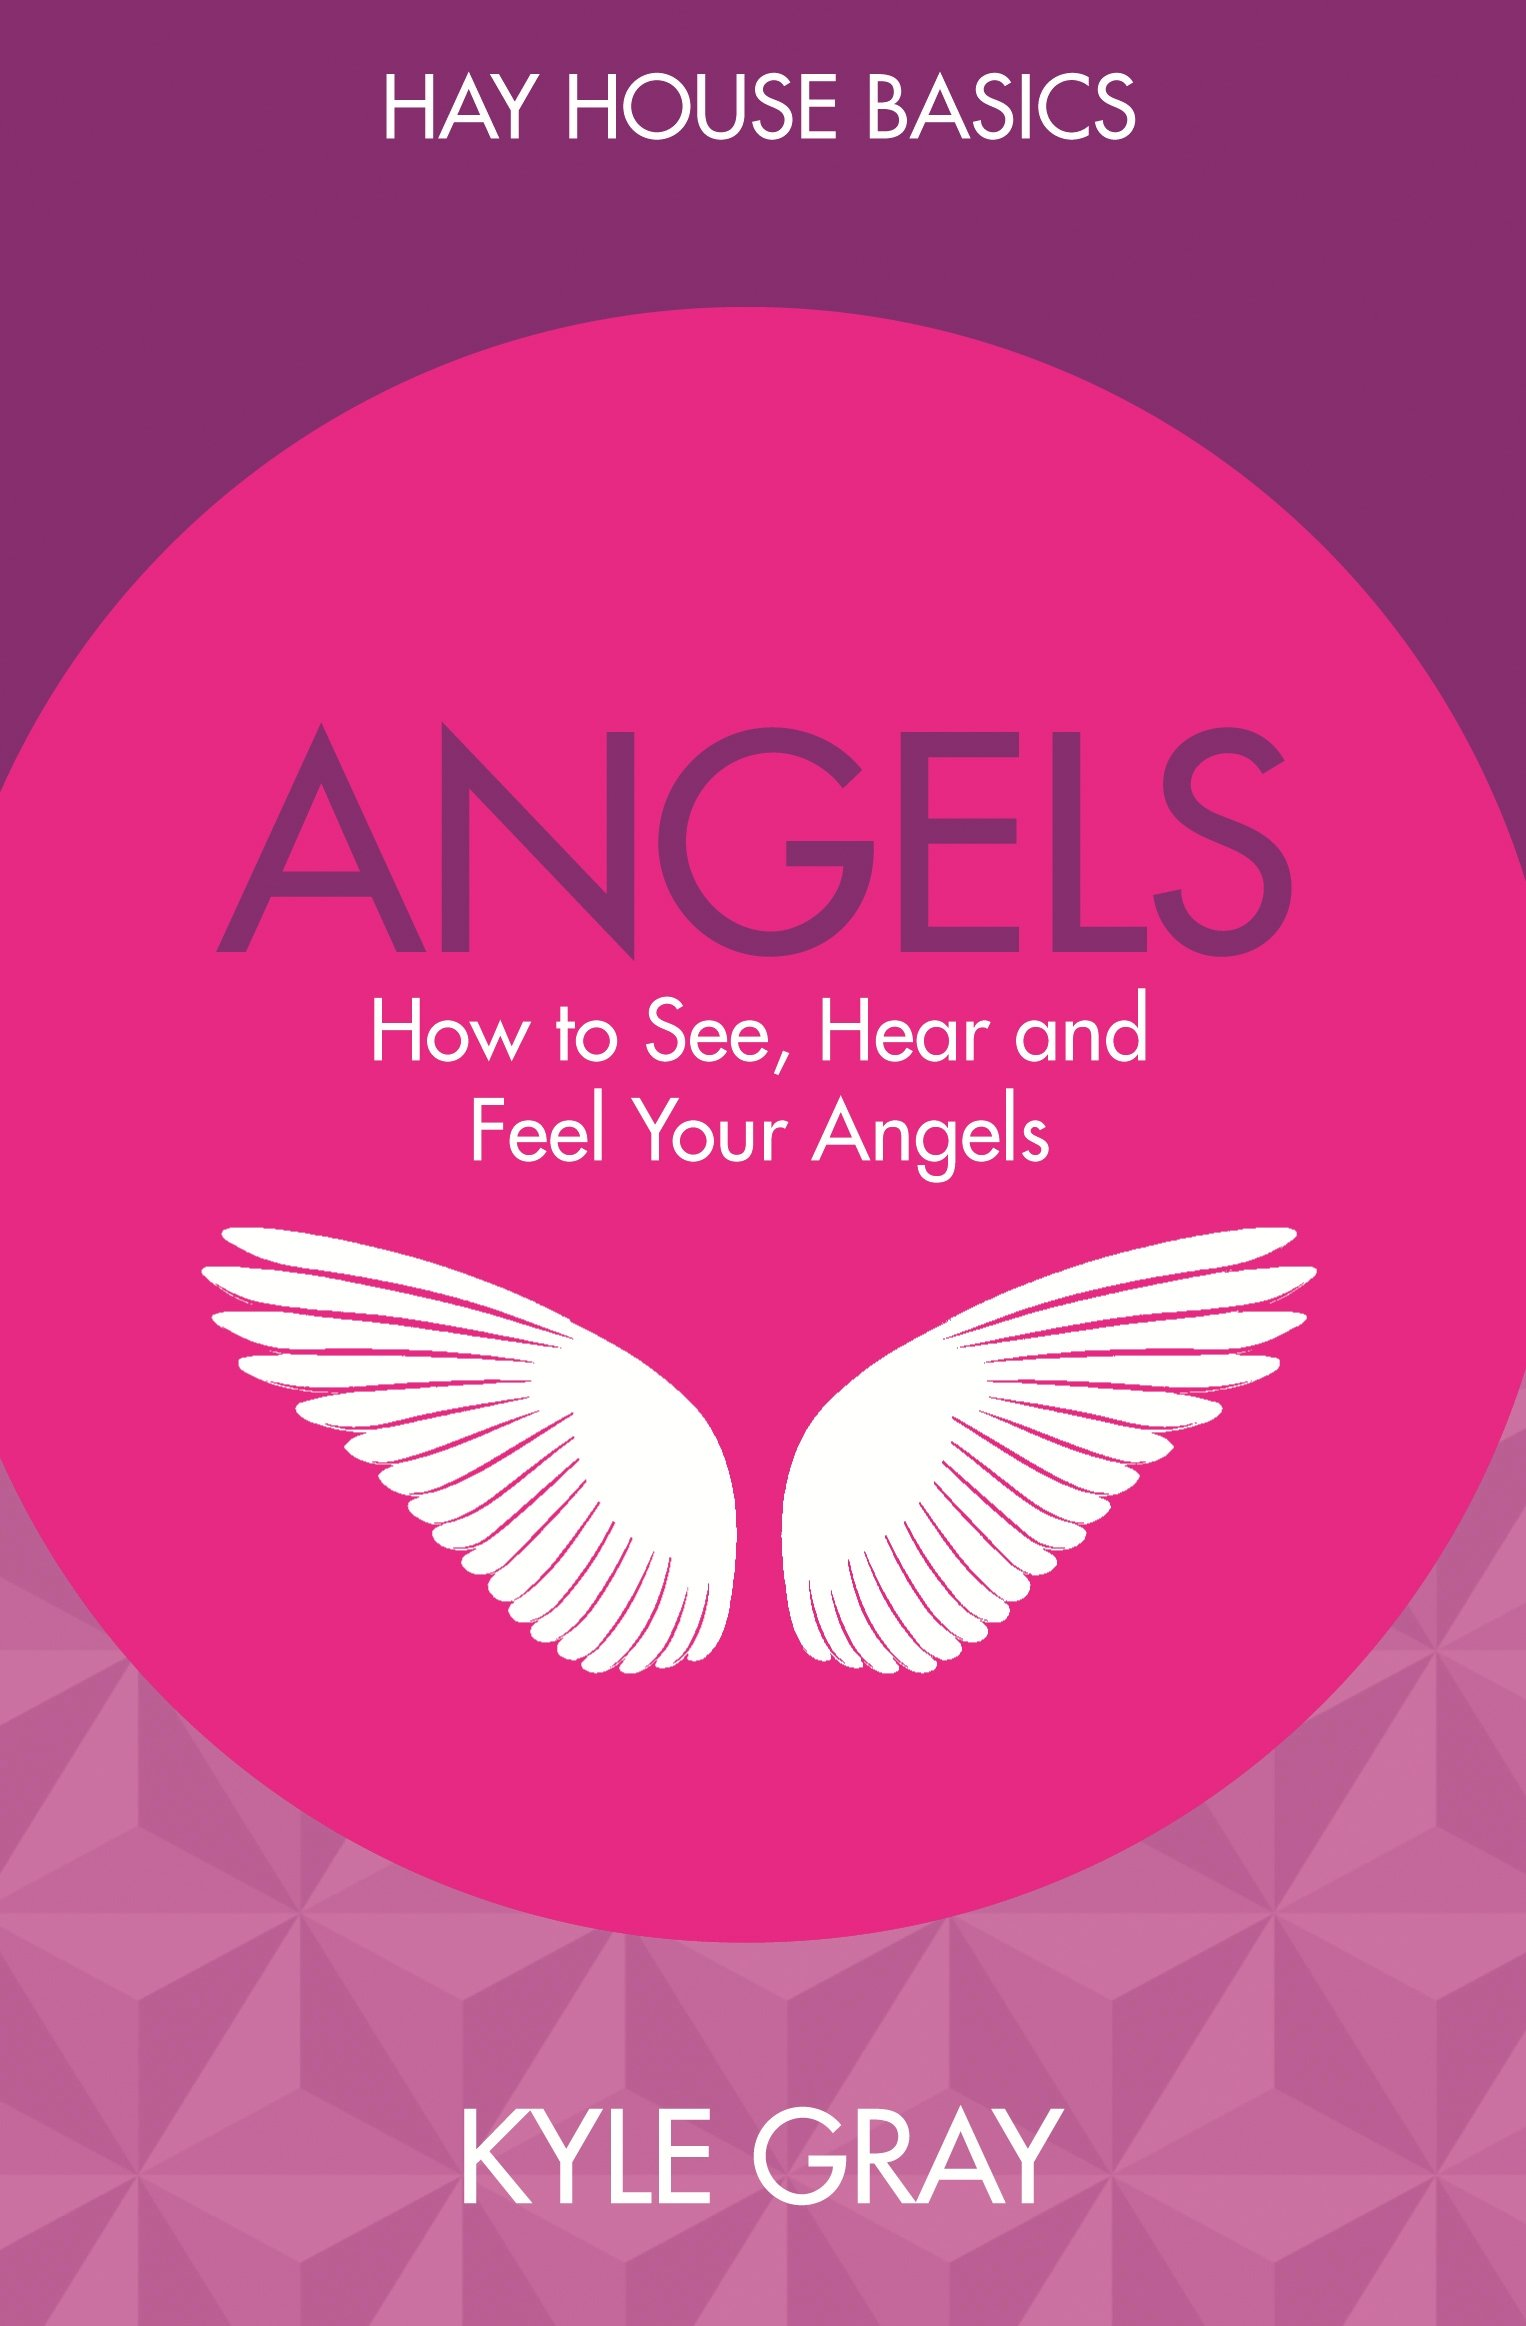 Angels: How to See, Hear and Feel Your Angels (Hay House Basics) pdf